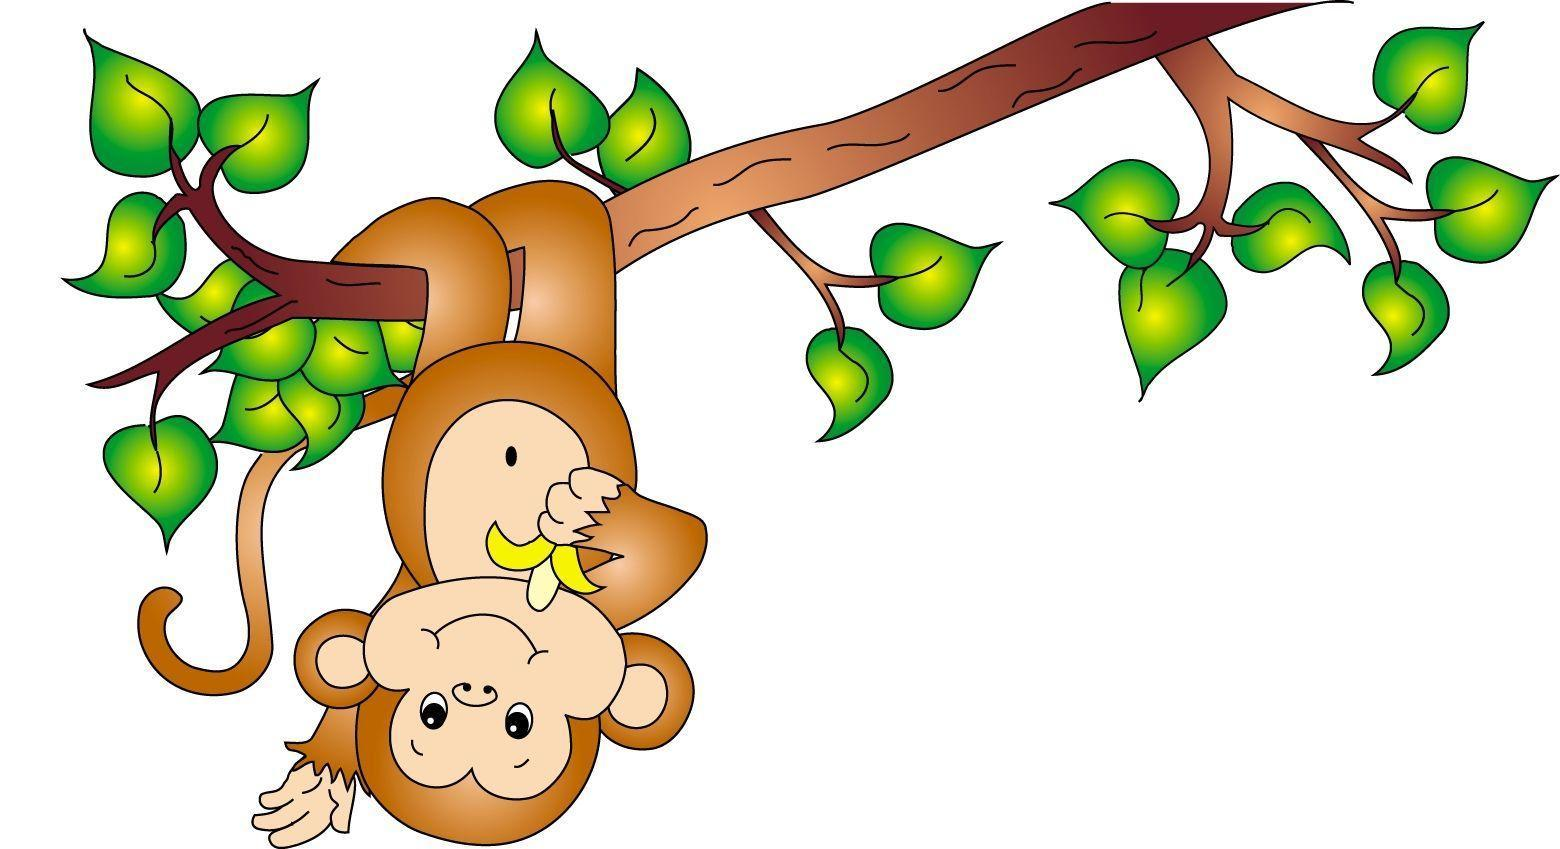 monkey cartoon wallpaper - photo #18